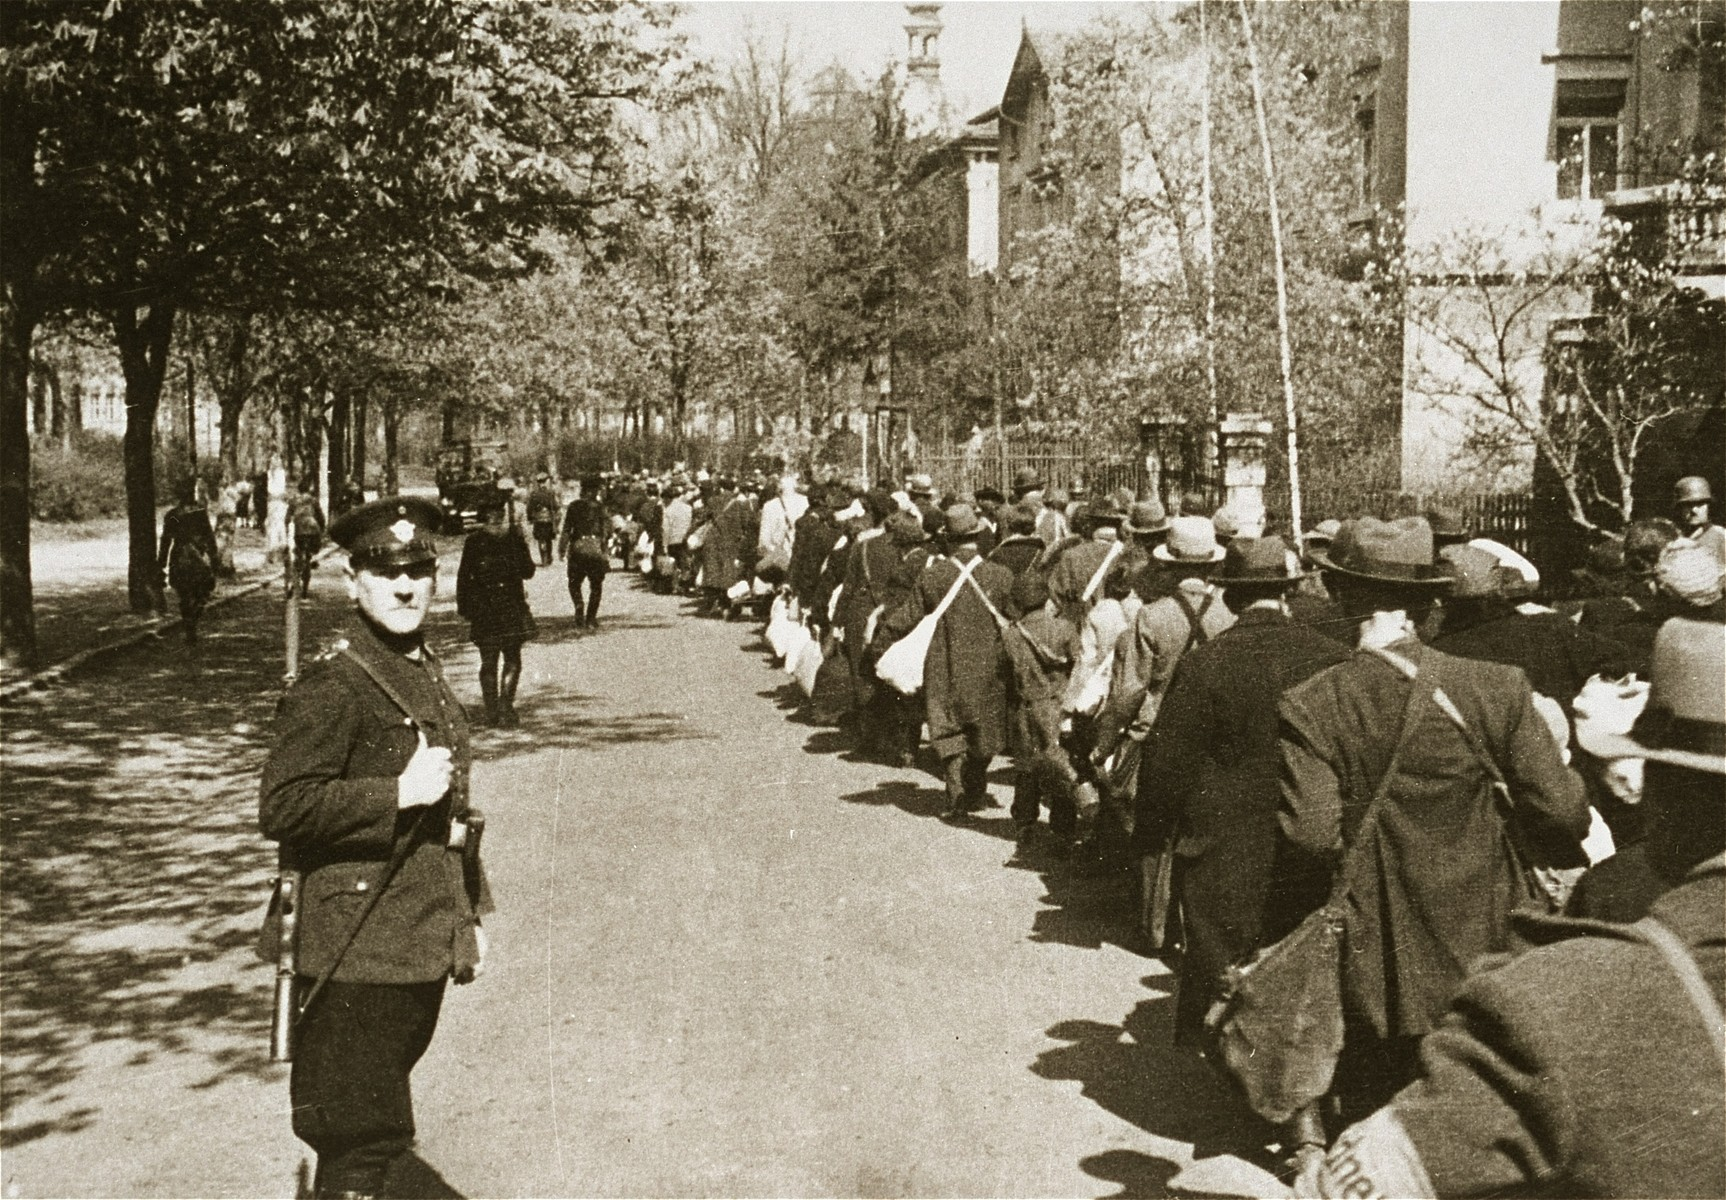 Jewish deportees, carrying a few personal belongings in bundles and suitcases, march through town along the Hindenburgstrasse from the assembly center at the Platzscher Garten to the railroad station.